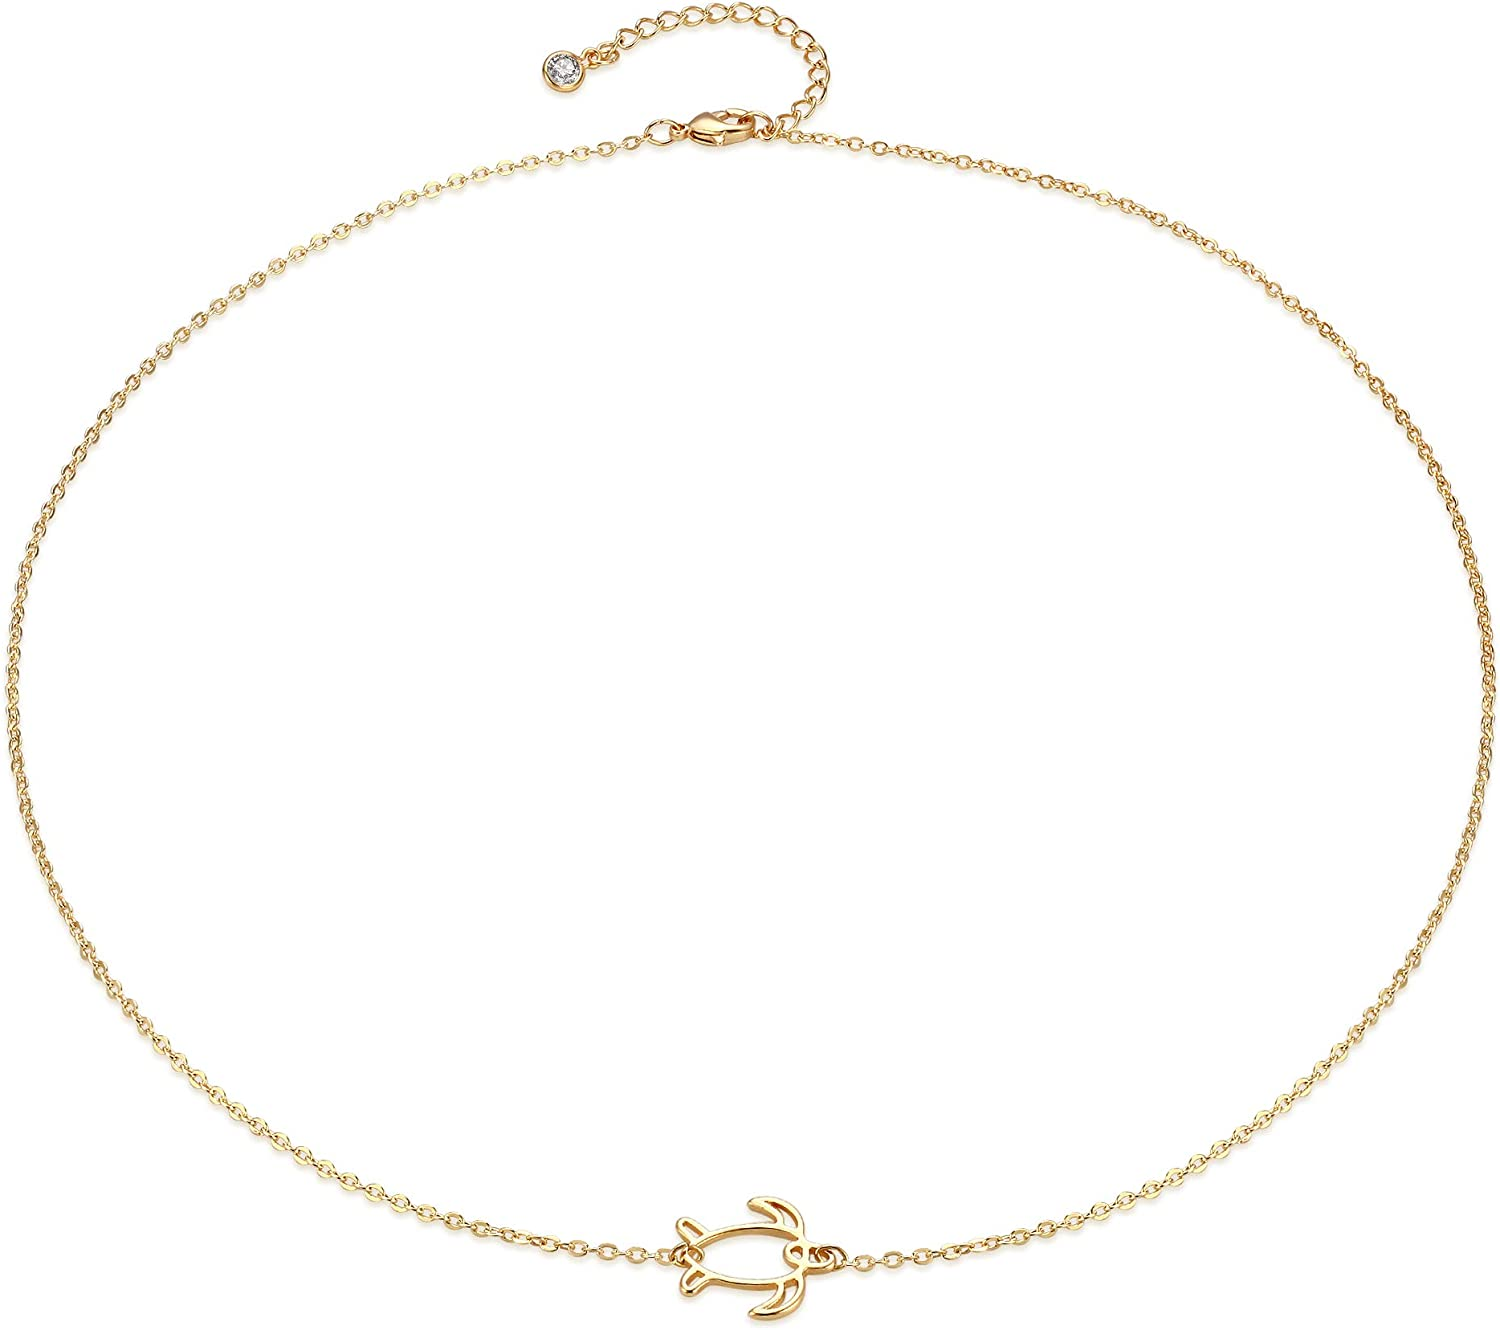 Gold Dainty Circle Purchase Necklace 14K Half Q New item Third One Plated